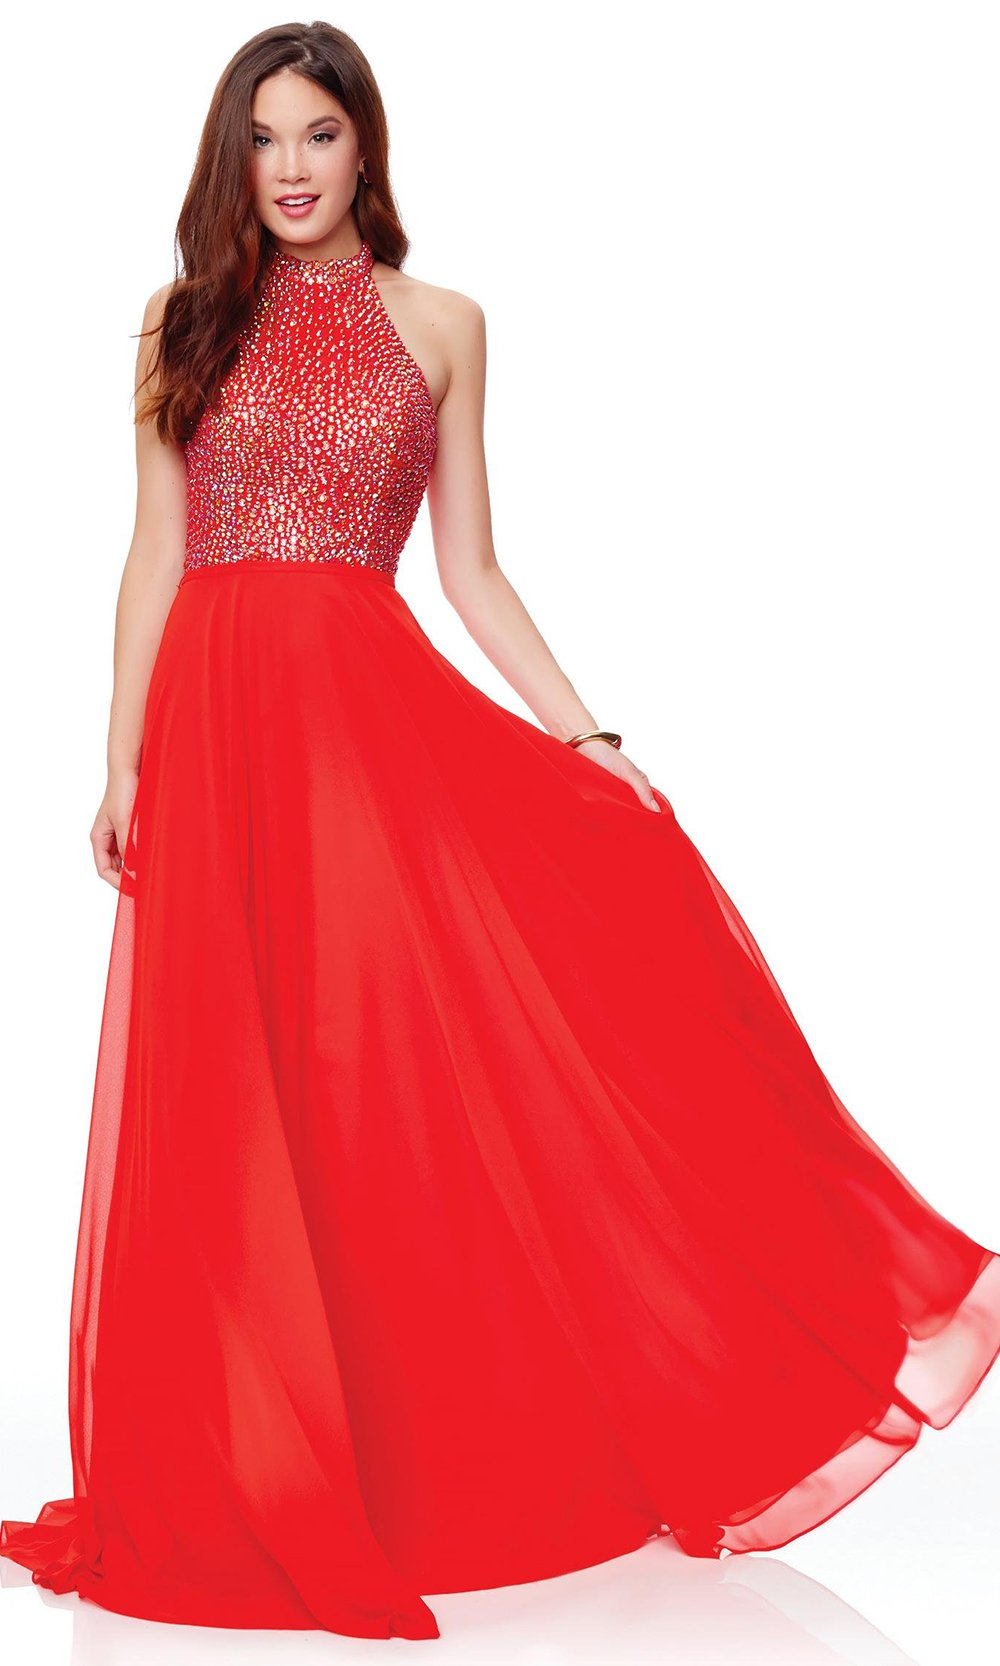 Clarisse - 3750 Rhinestone-Studded High Halter Chiffon Gown In Red